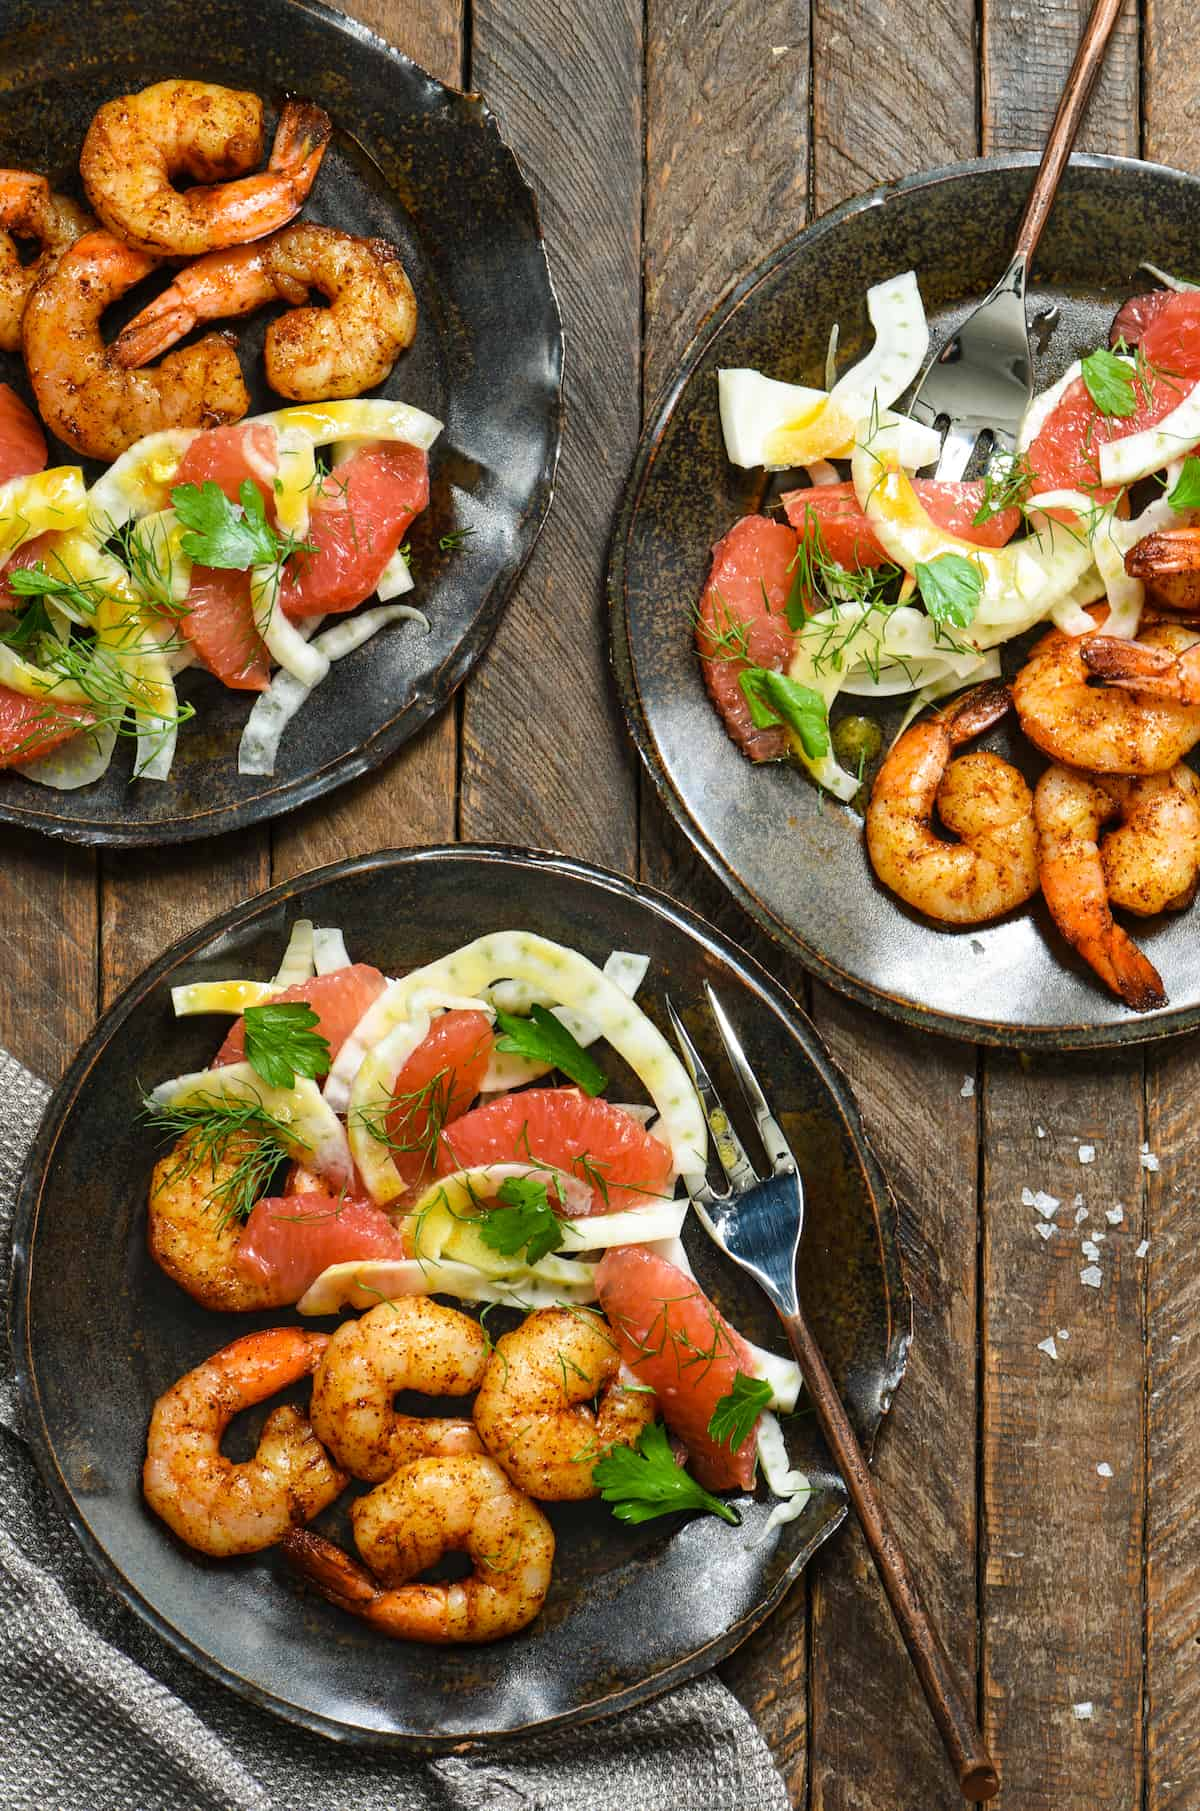 Roasted Shrimp with Grapefruit & Fennel Salad + 11 Grapefruit Recipes to Brighten Your Winter - Bring some happy flavor to a cold day with an appetizer, cocktail, breakfast, salad, lunch or dinner celebrating juicy, sweet grapefruit! | foxeslovelemons.com